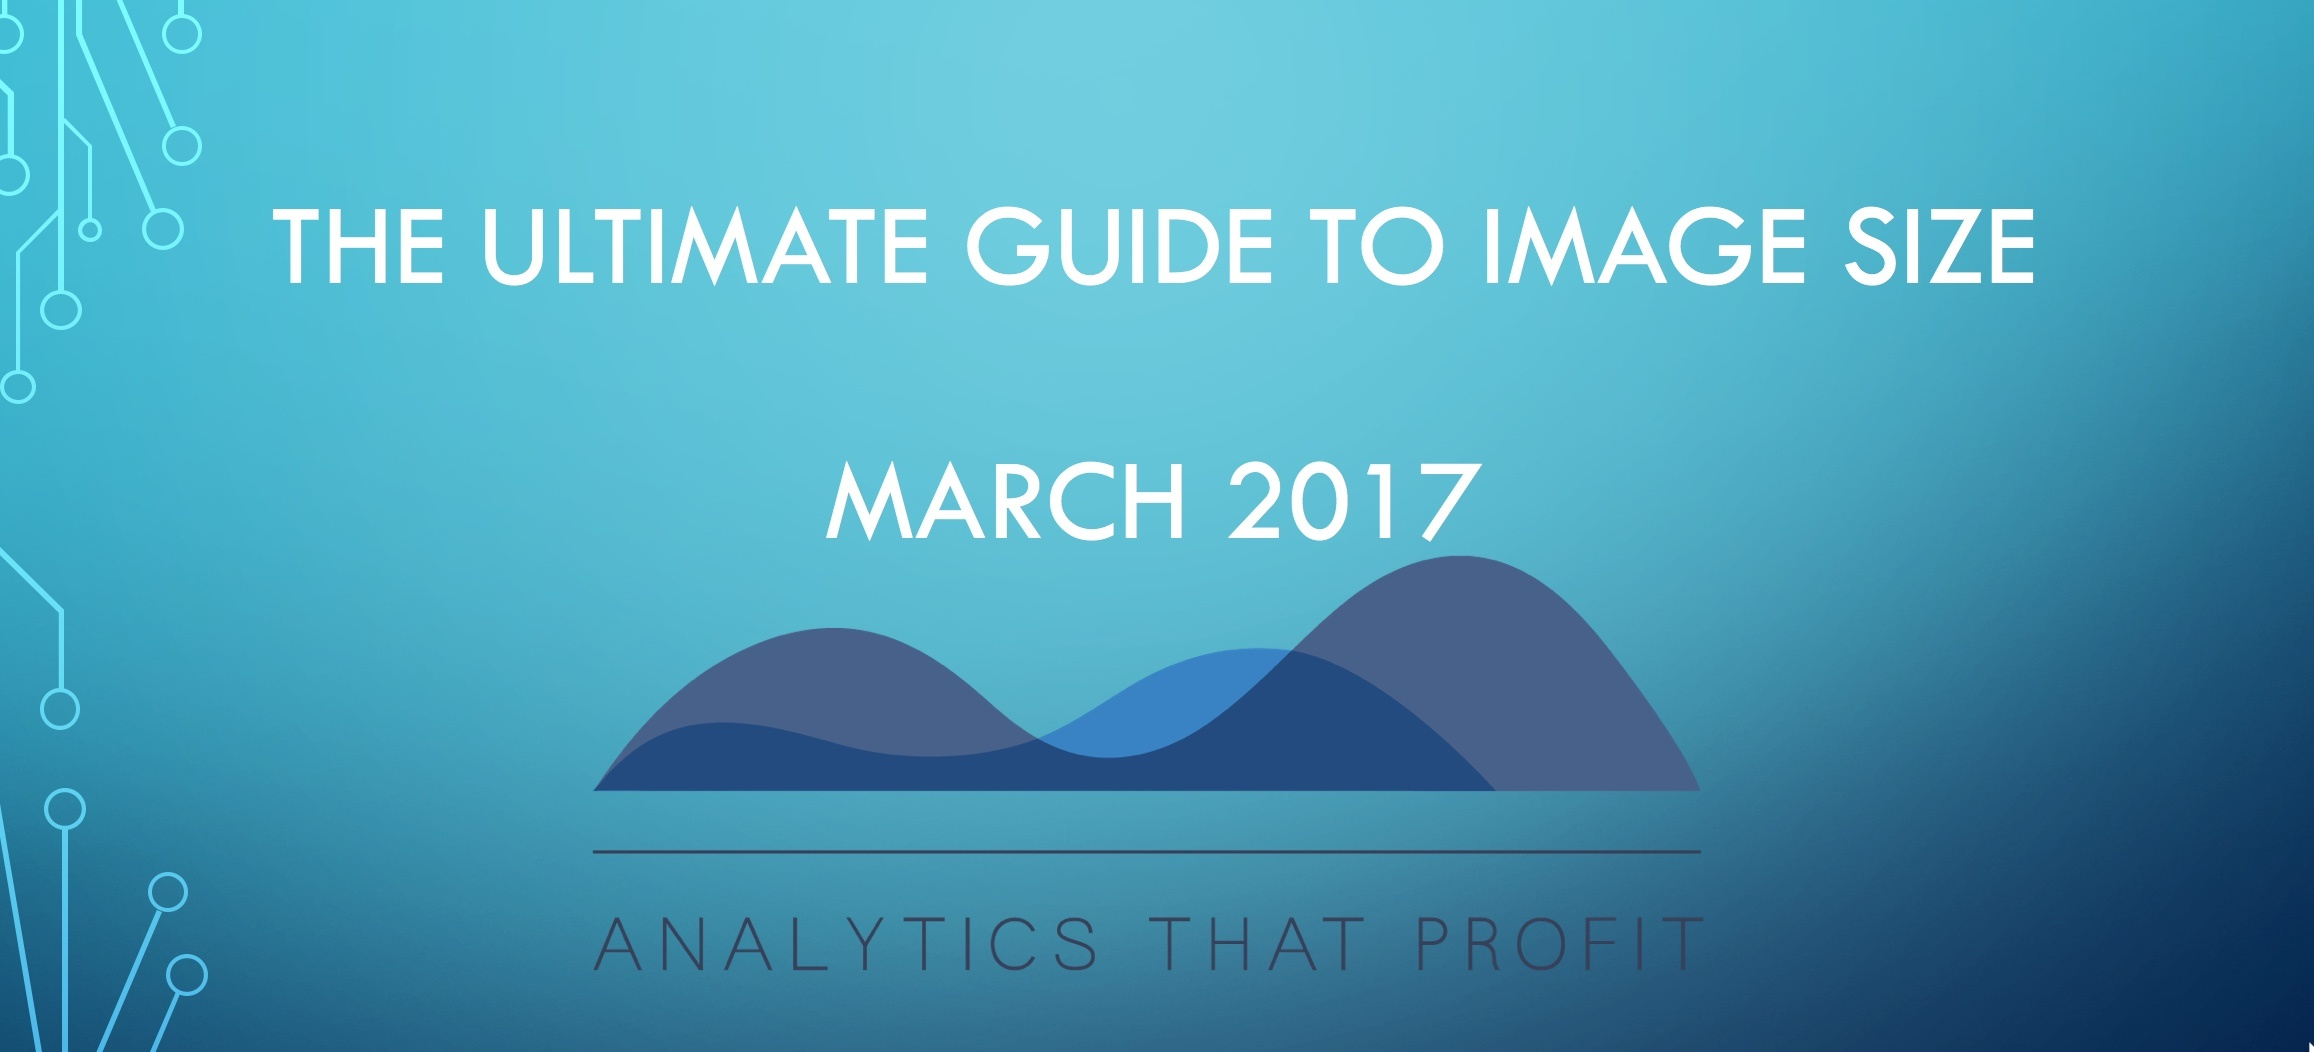 The Ultimate Guide To Image Size Analytics That Profit.jpeg